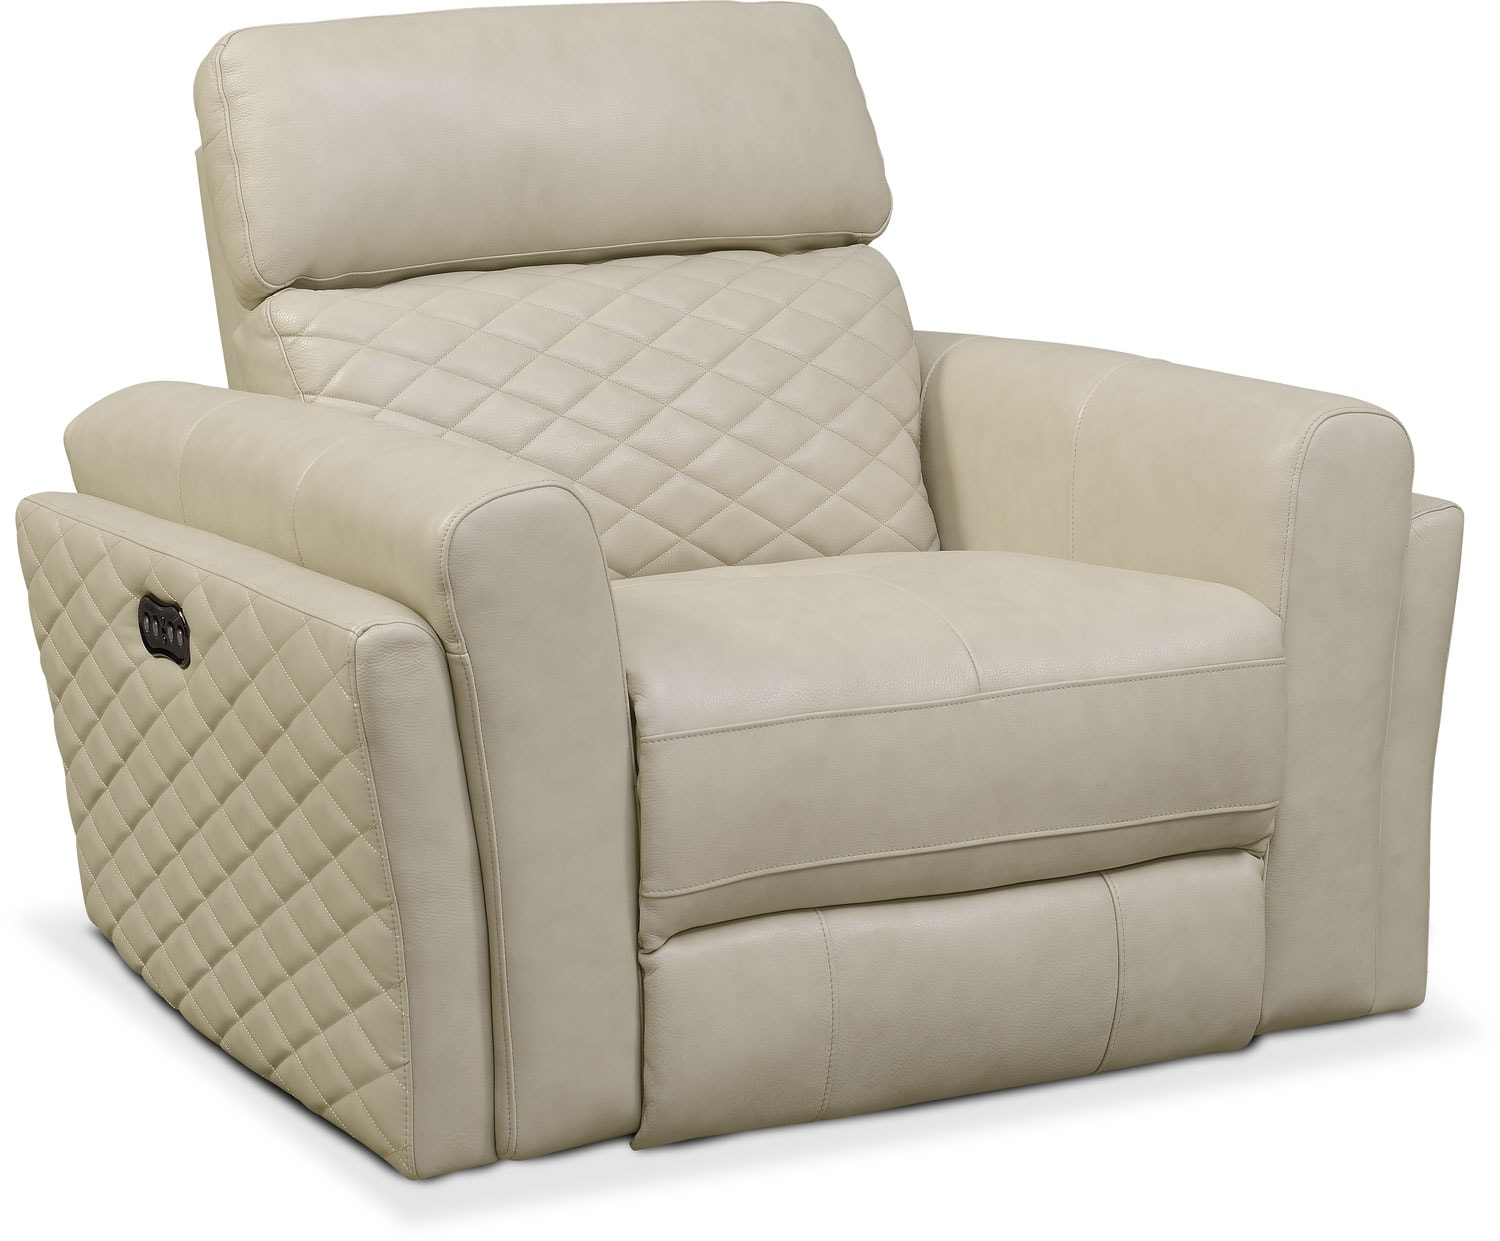 Catalina Power Recliner - Cream  sc 1 st  Value City Furniture & Recliners and Glider Chairs | Value City | Value City Furniture islam-shia.org